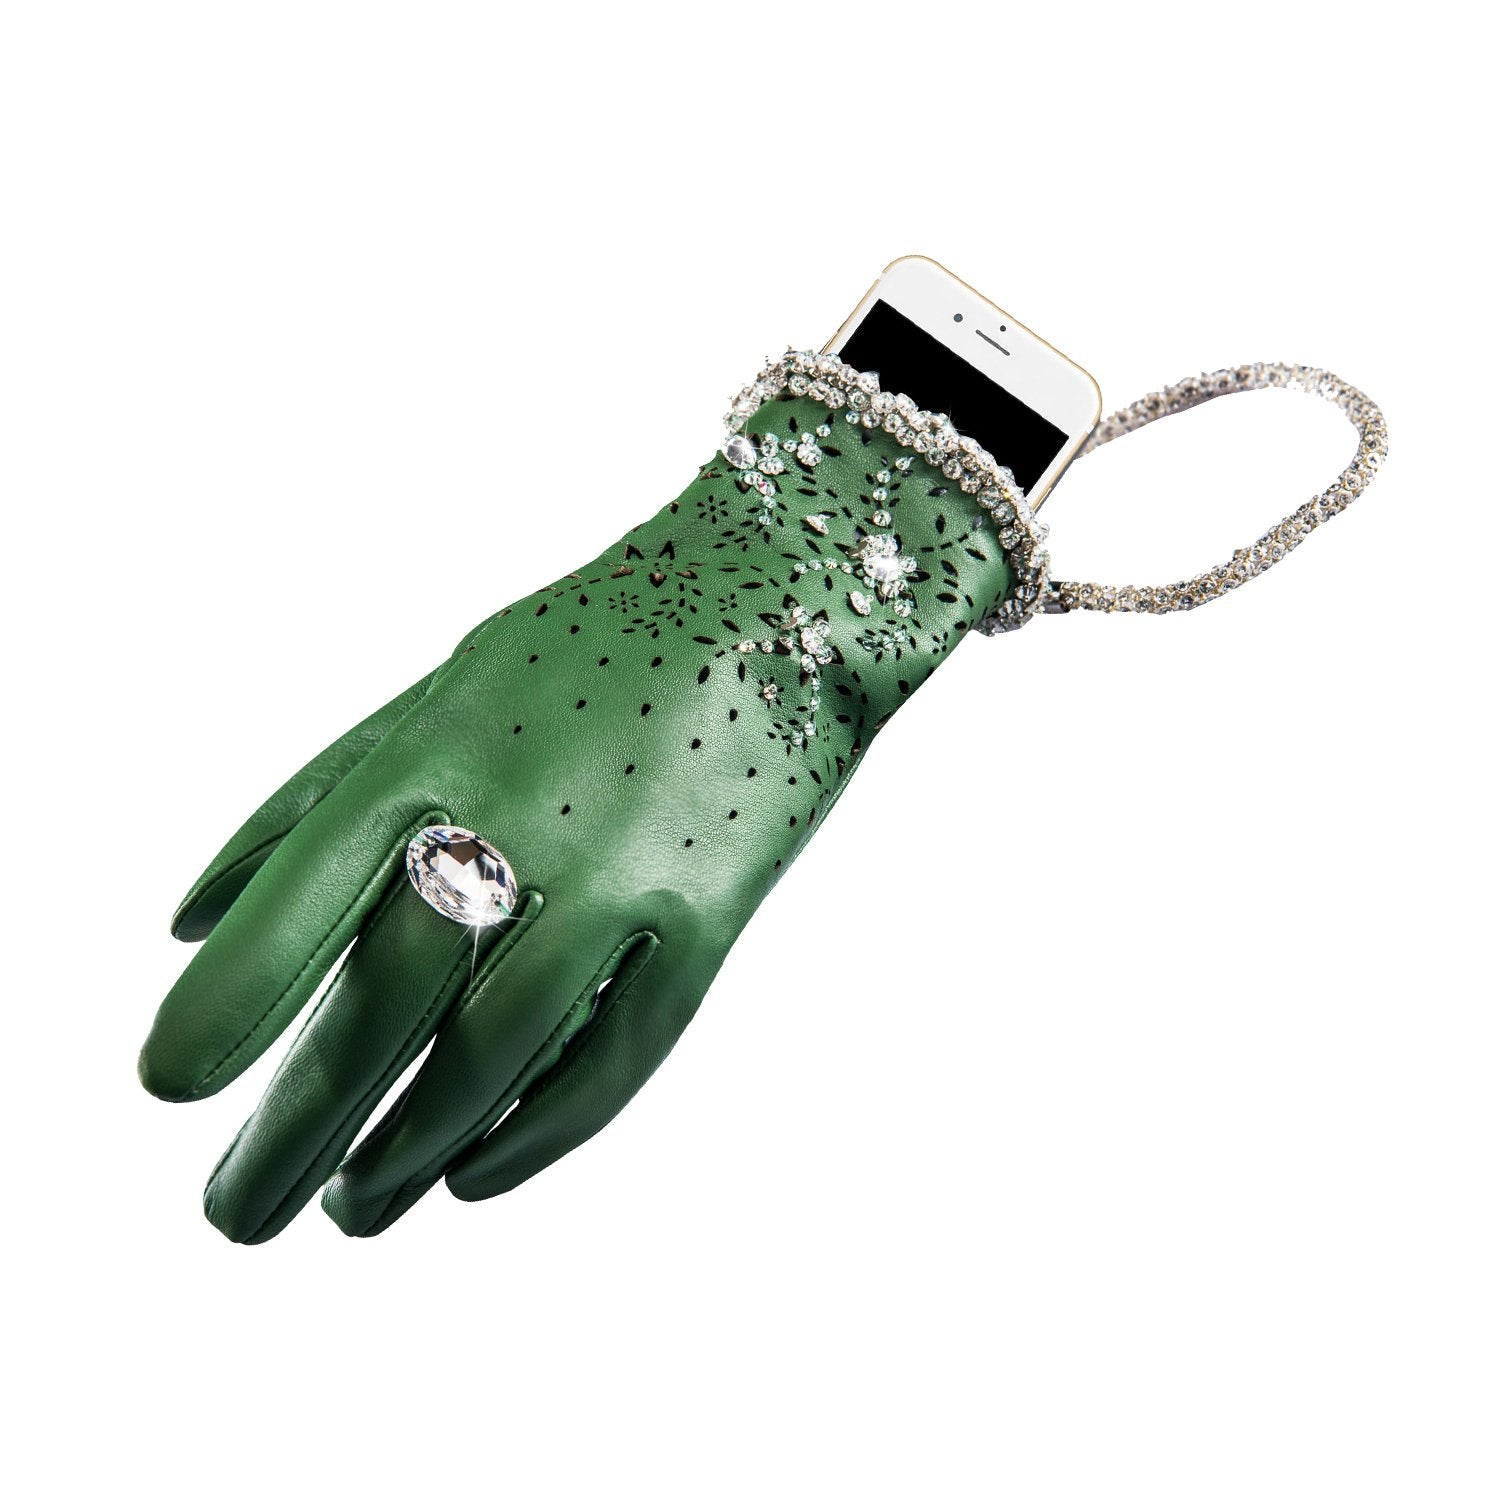 【COUTURE】Leather 2-way Glove-clutch with Strap and Swarovski® Crystals (1pc) - THE SPARKLE COLLECTION by GERMAN POOL